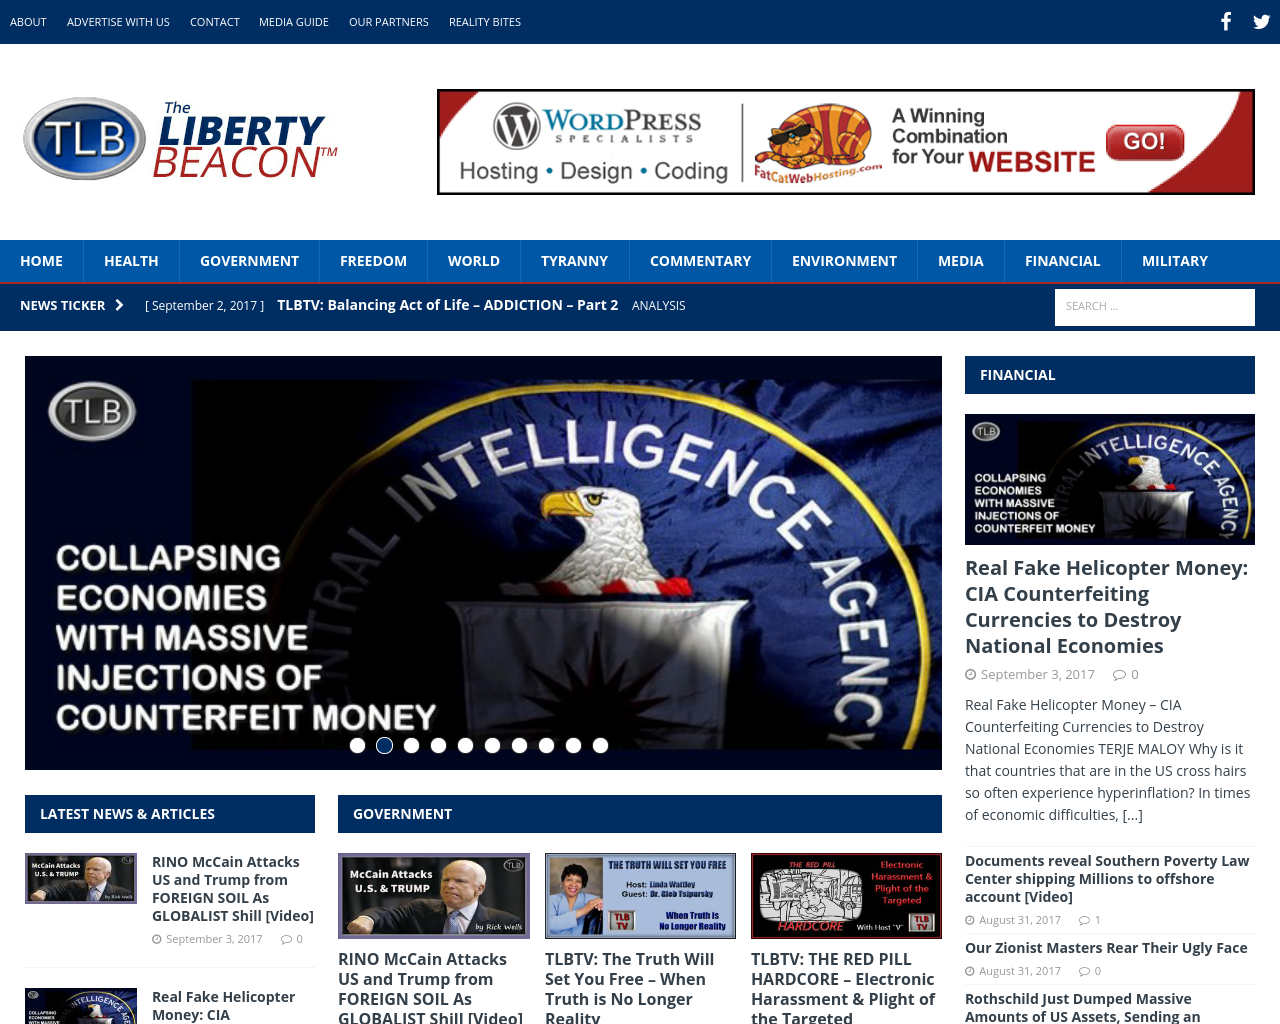 THE-LIBERTY-BEACON-Advertising-Reviews-Pricing